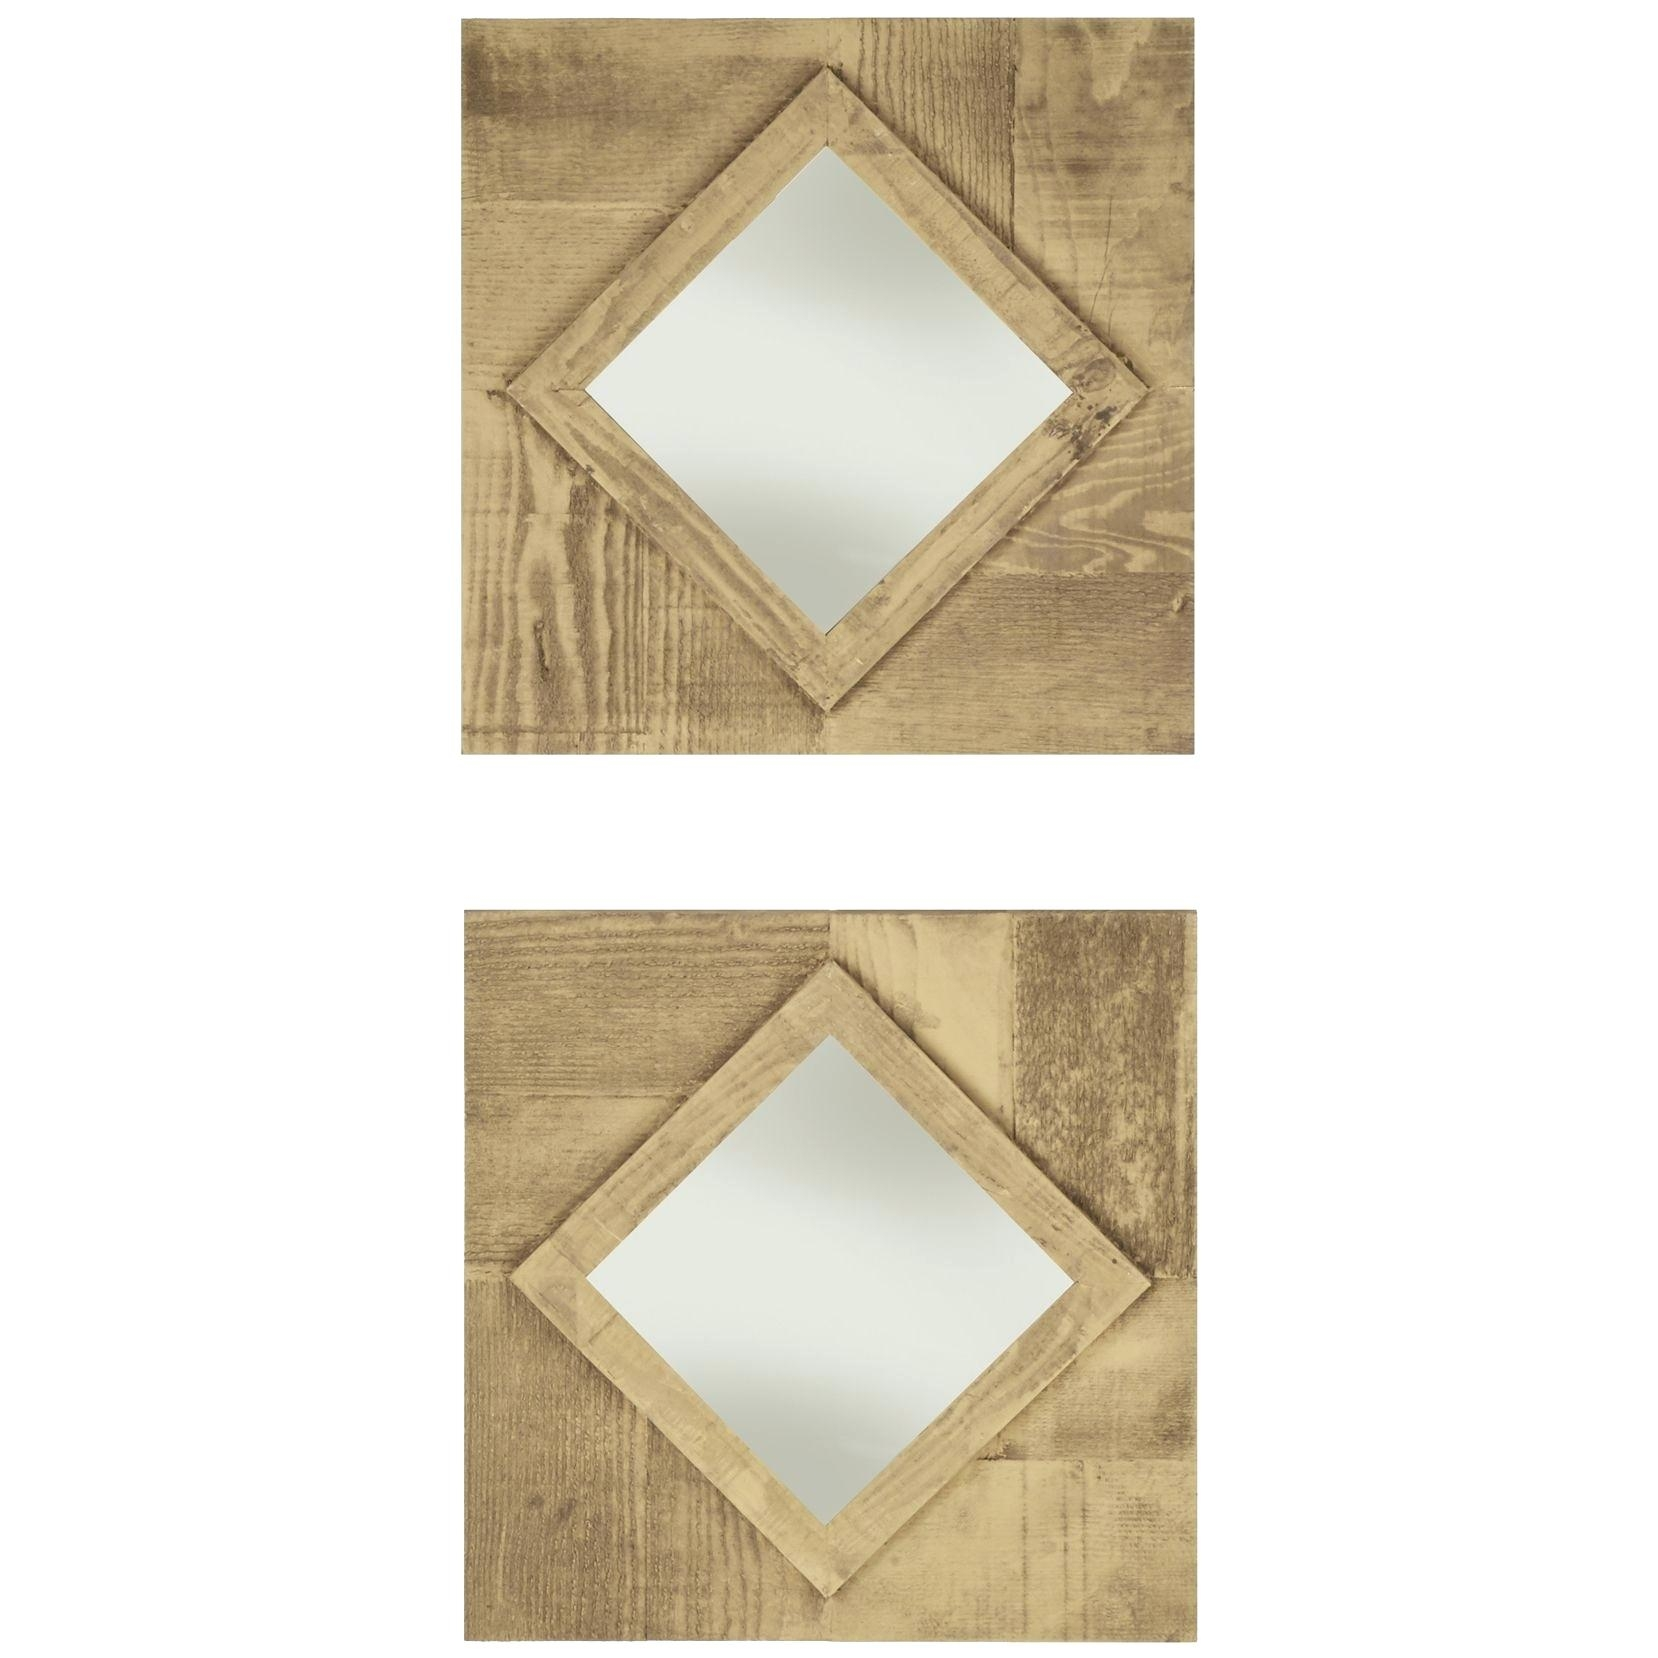 Three Way Mirror Unusual Shaped Mirrors Long Rectangular In Unusual Shaped Mirrors (Image 11 of 15)